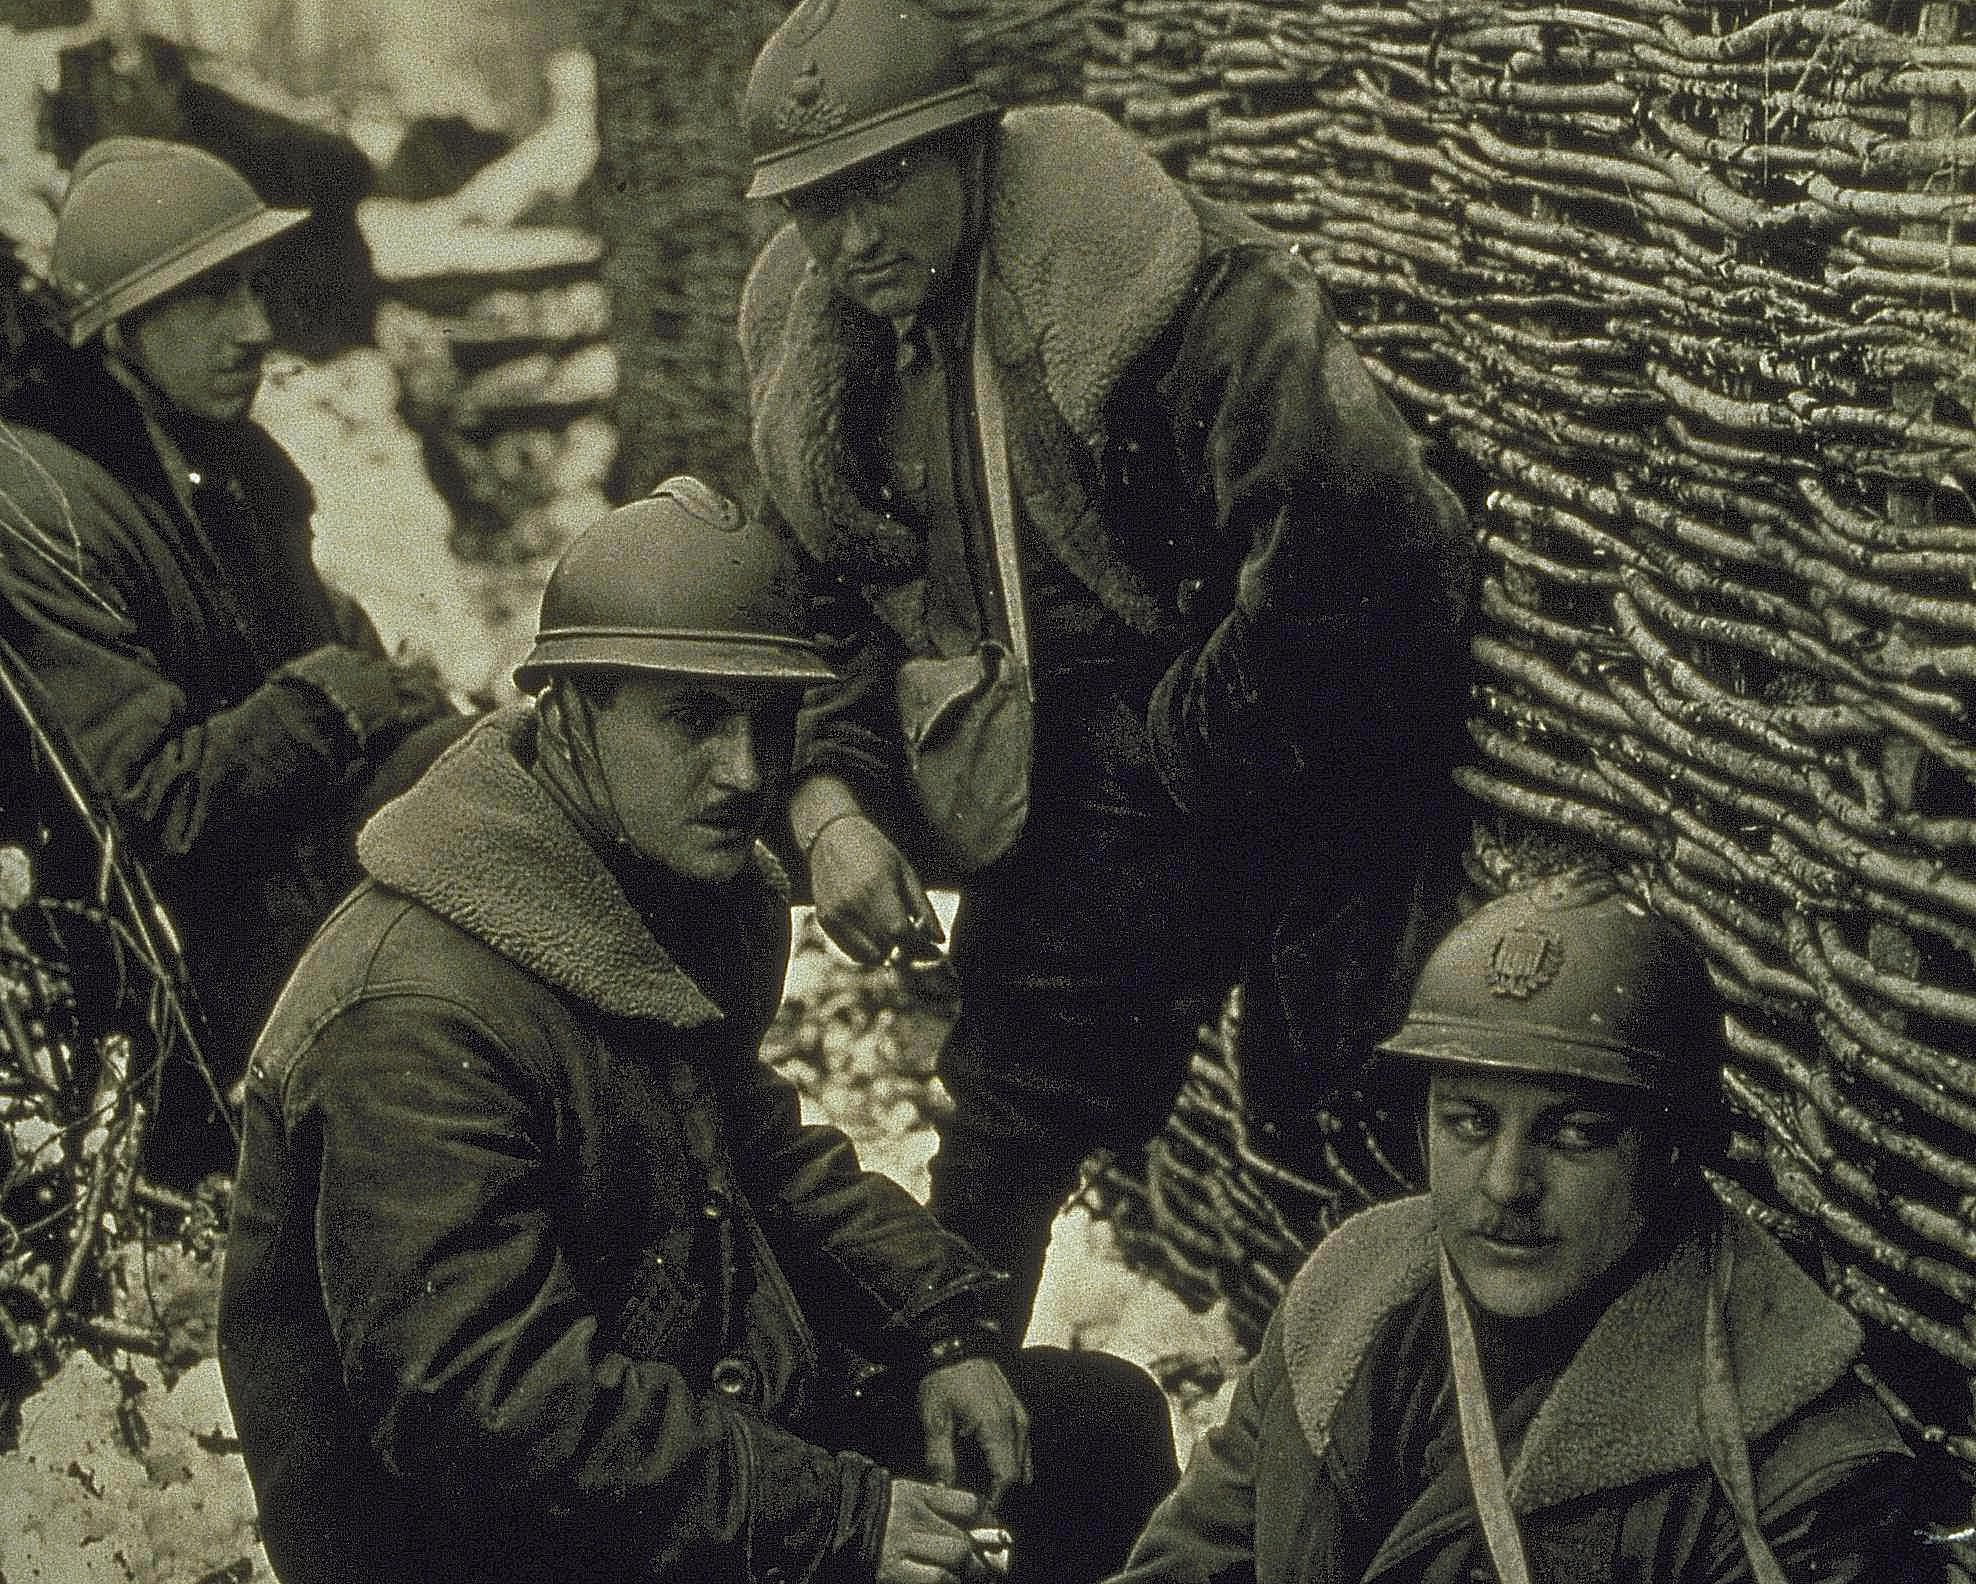 western front essay Open document below is an essay on all quiet on the western front from anti essays, your source for research papers, essays, and term paper examples.